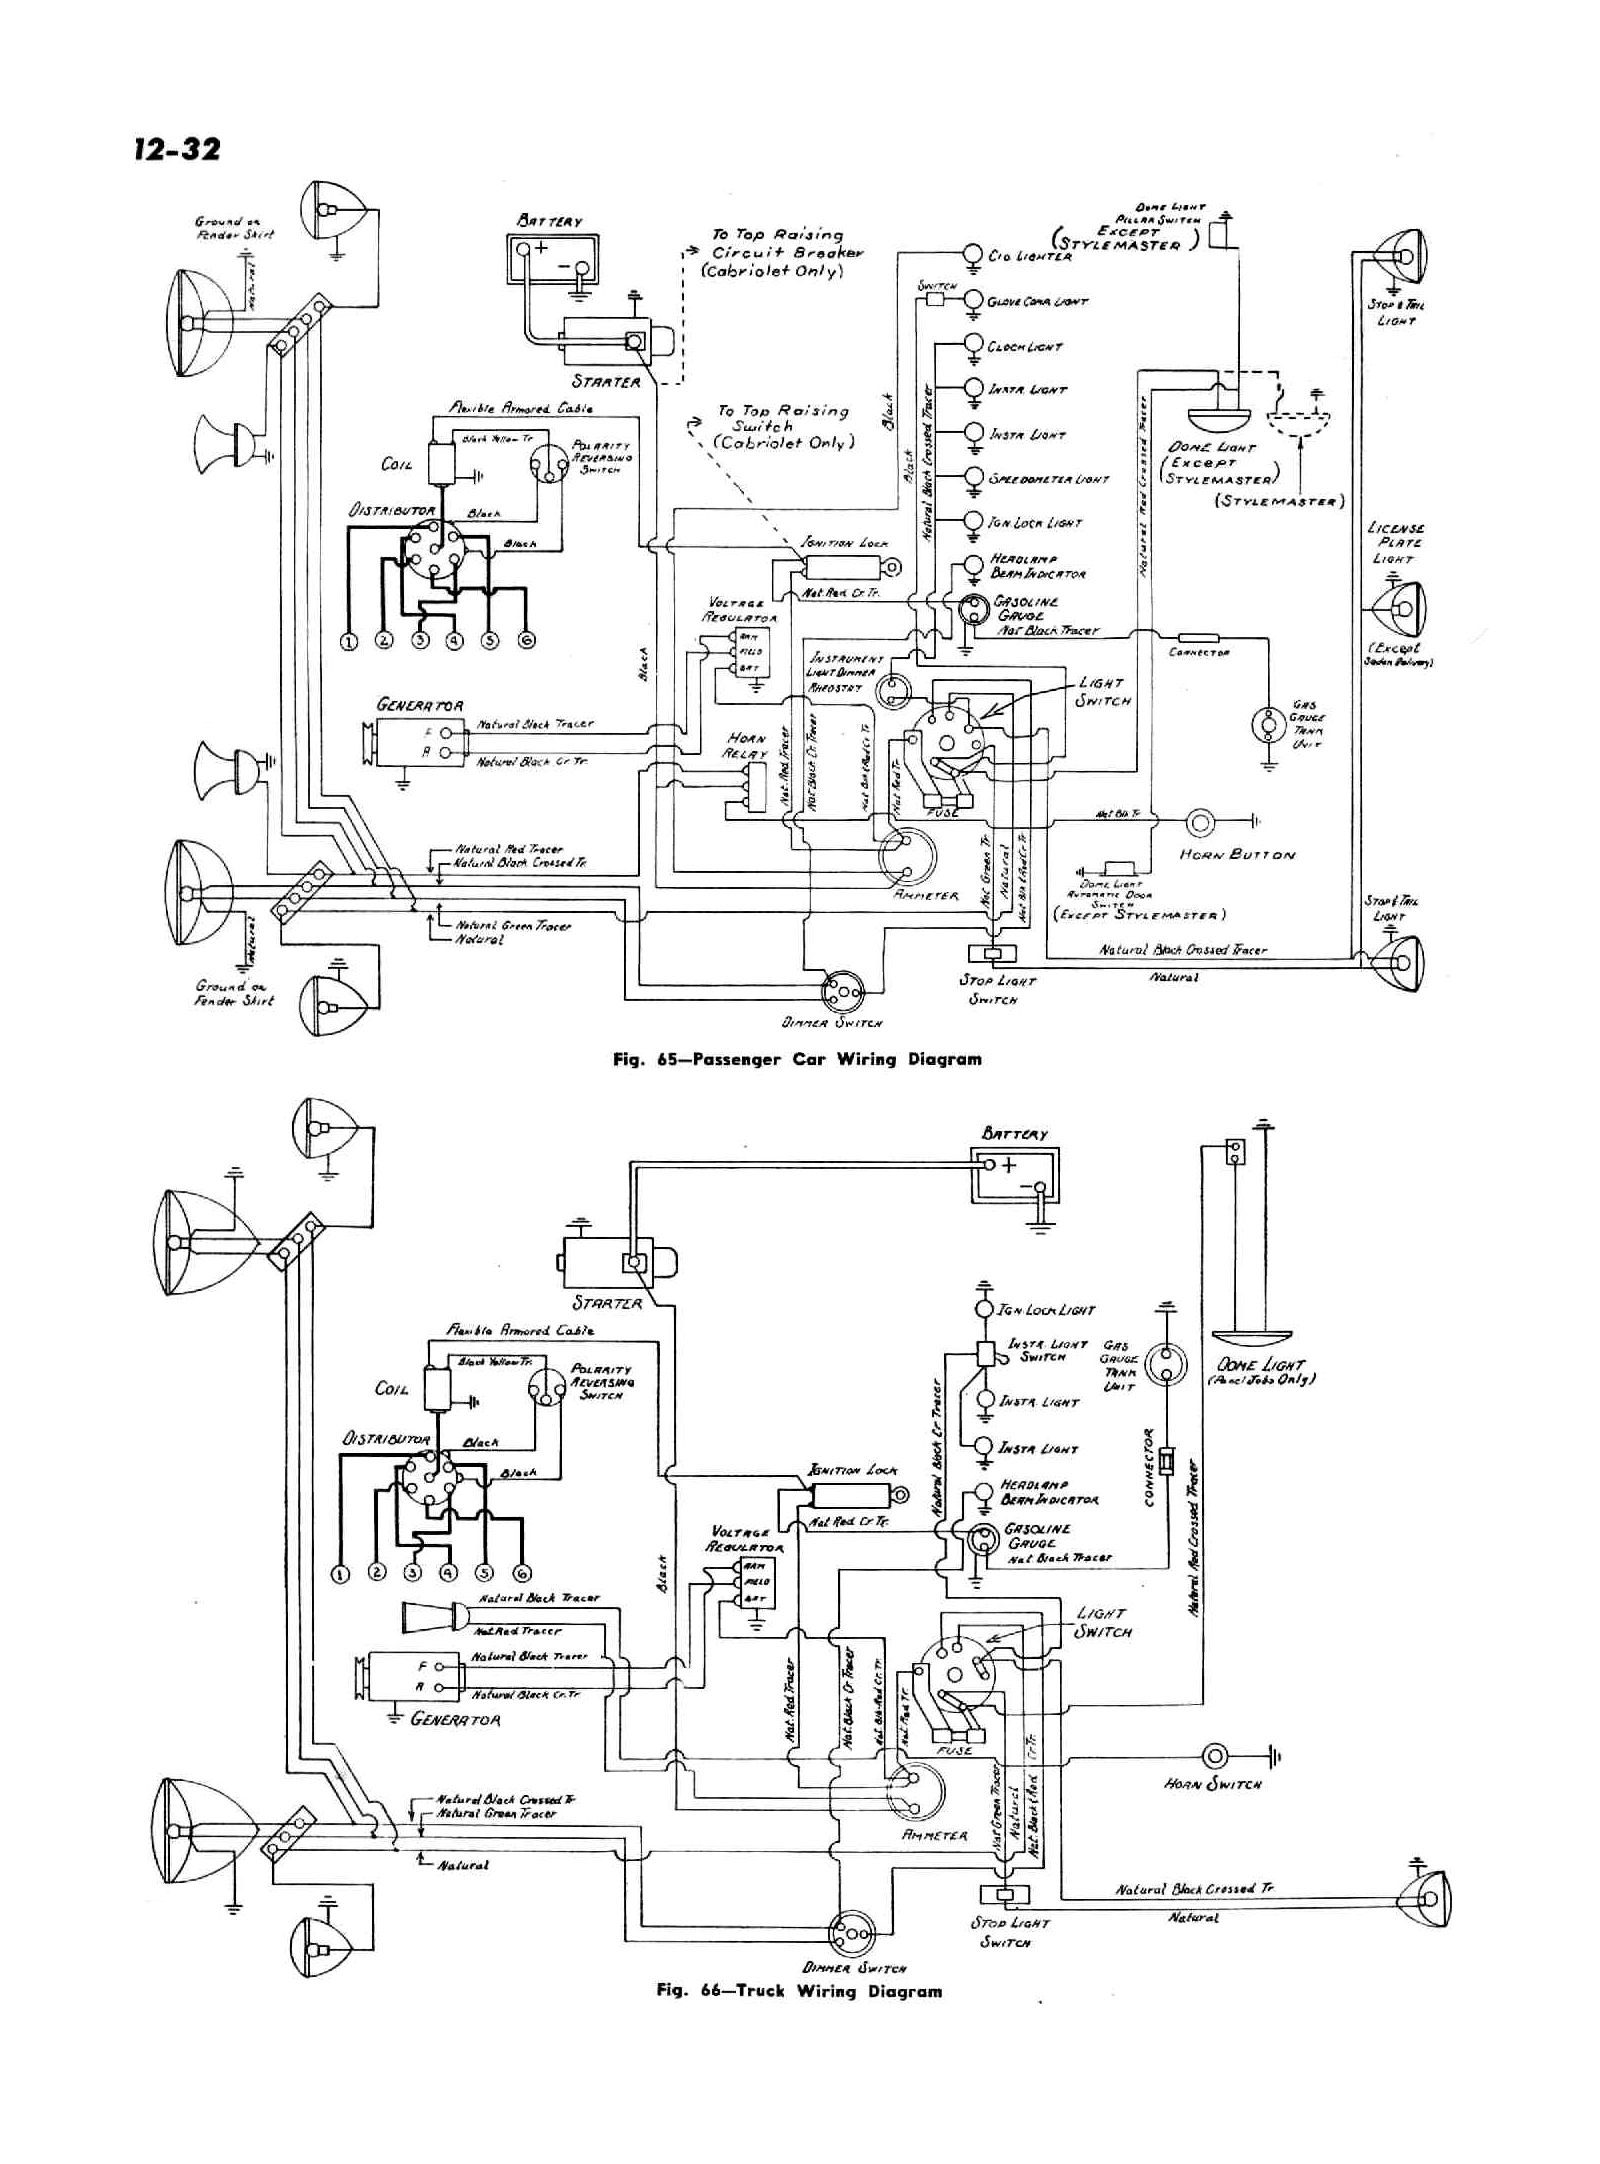 Kn 8879 1970 Camaro Wiring Diagram Android Apps On Google Play Free Diagram